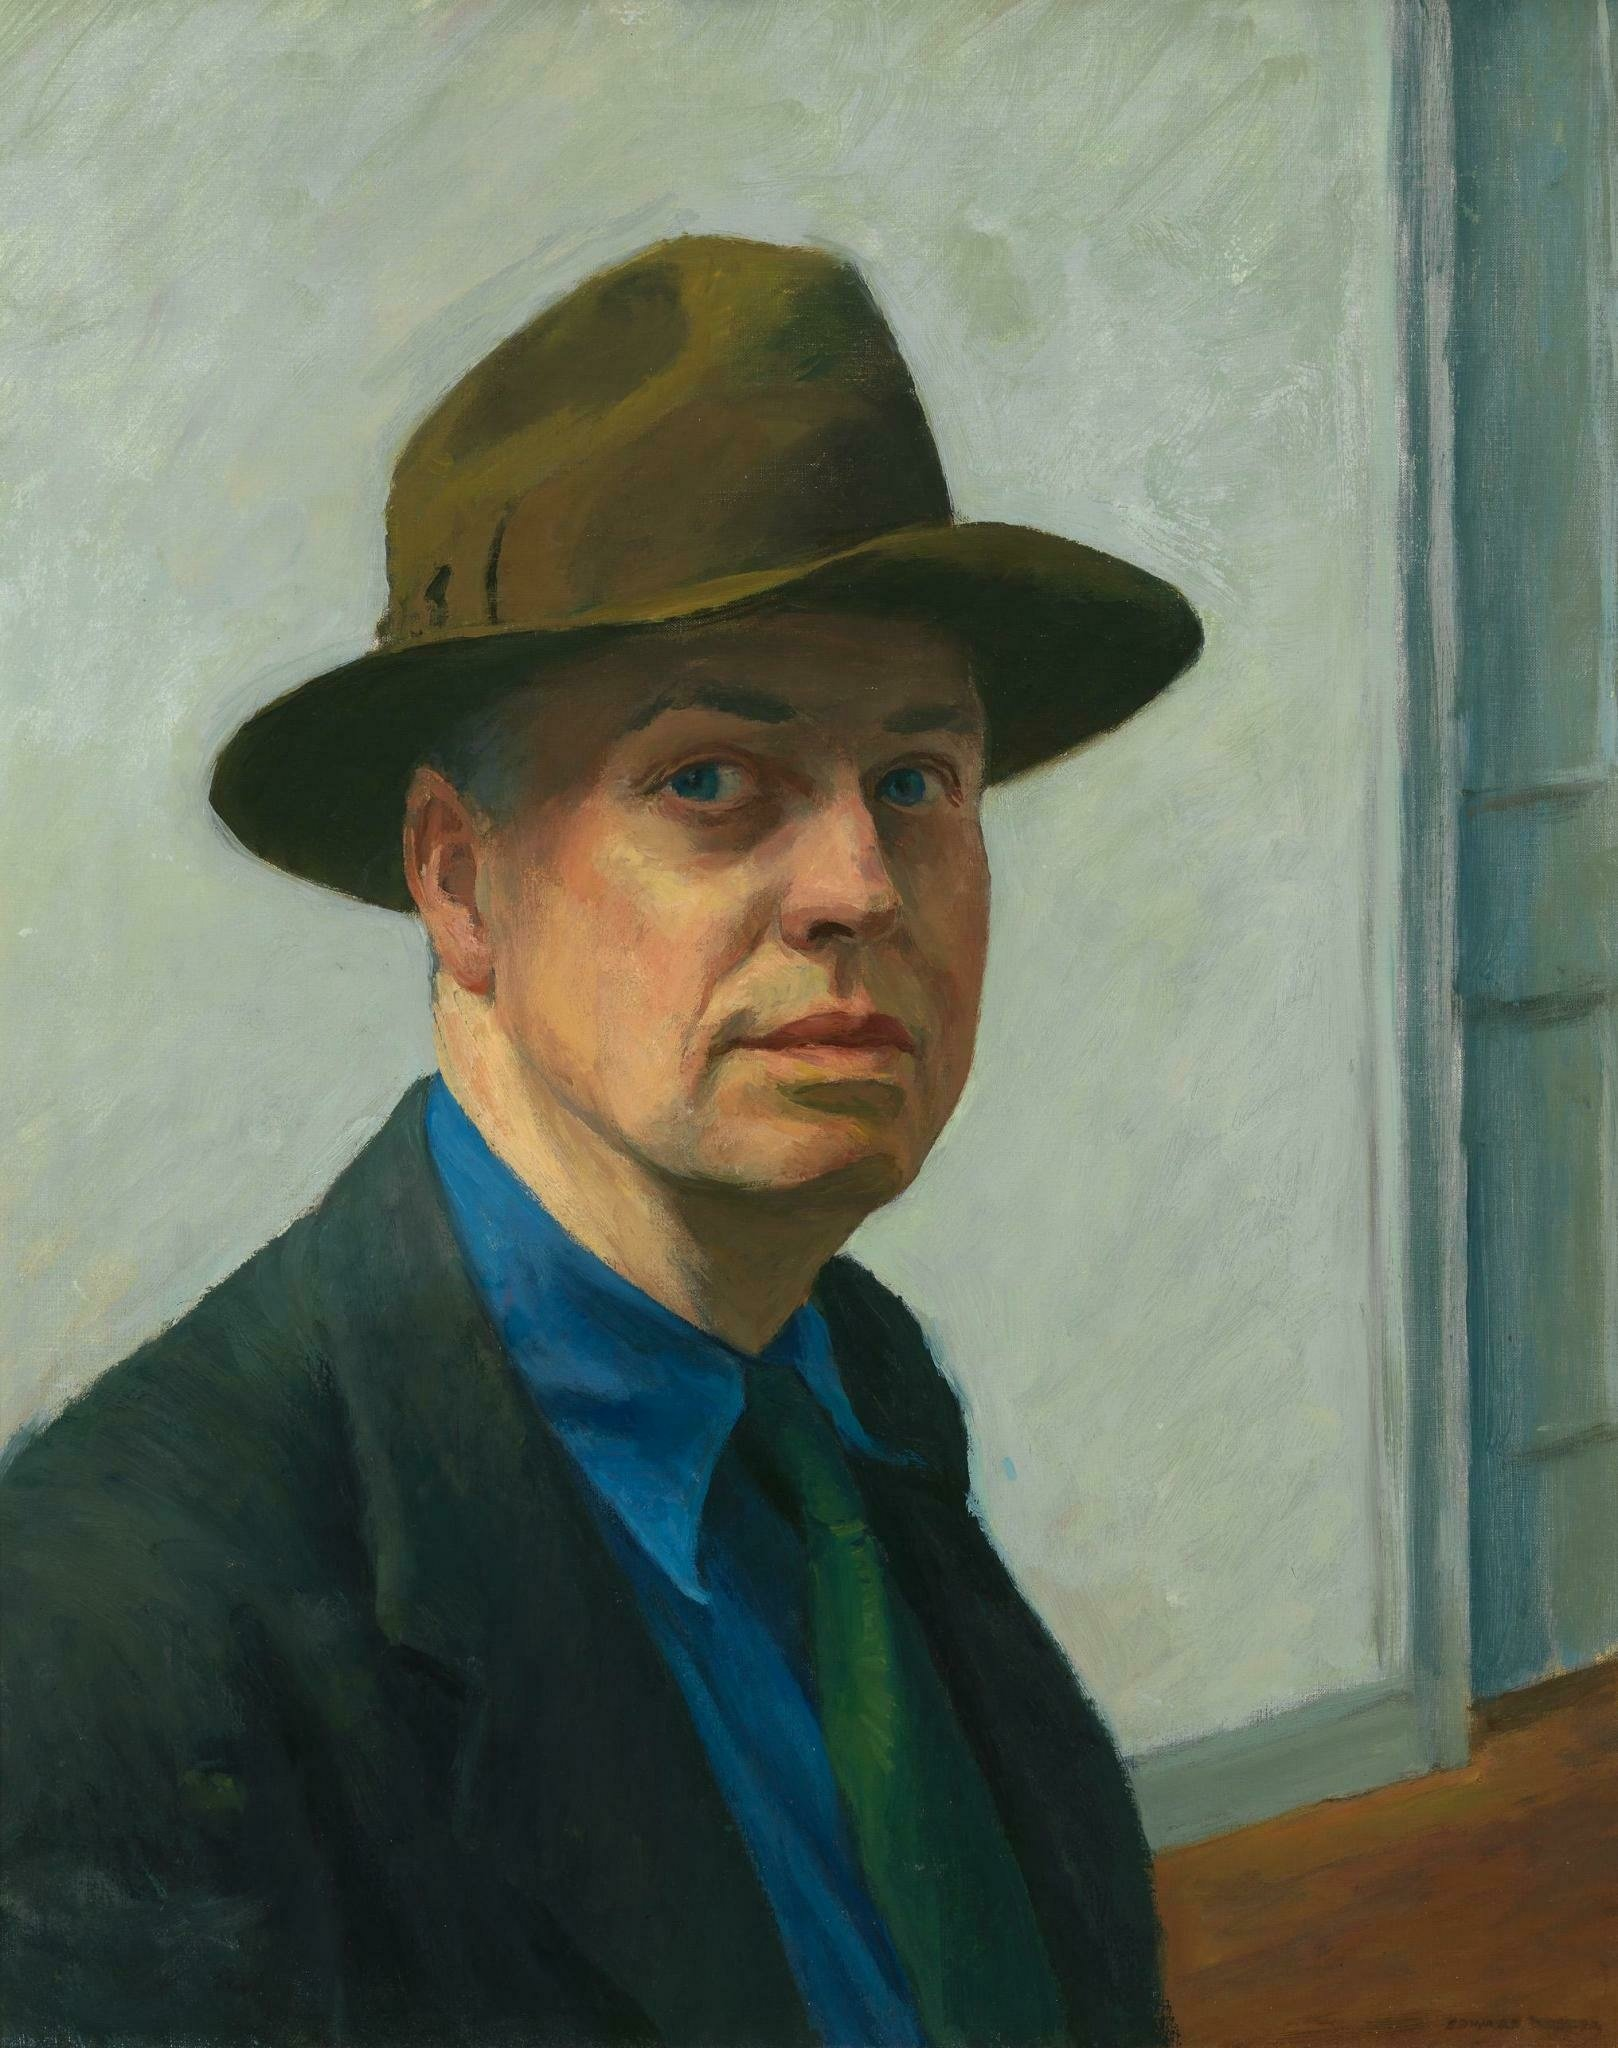 ONLINE Edward Hopper: A Virtual Lecture (via Zoom) at Rockland Center for the Arts